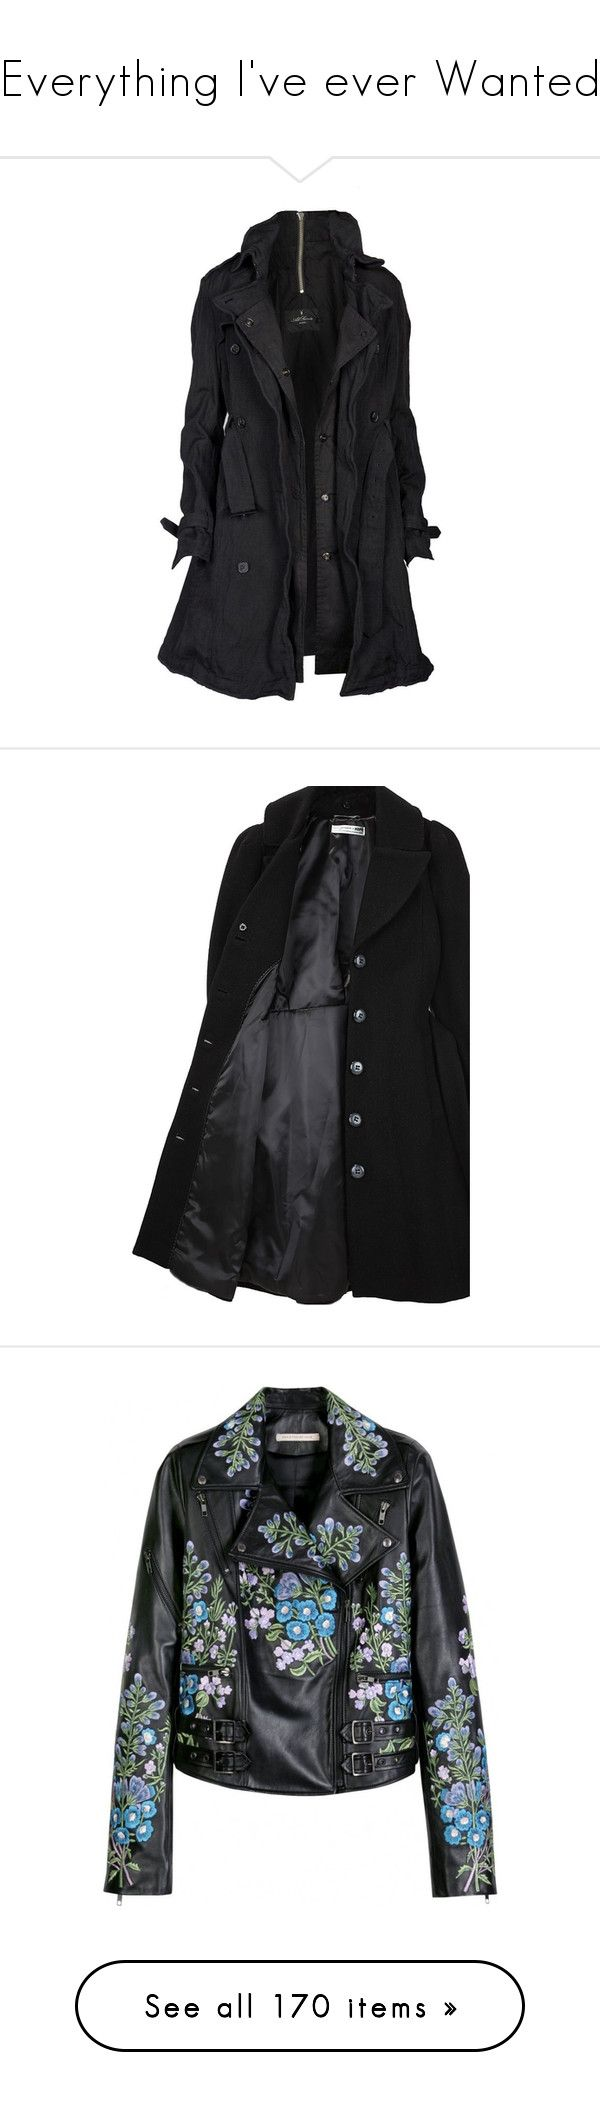 """""""Everything I've ever Wanted"""" by diamonds-guns ❤ liked on Polyvore featuring outerwear, coats, jackets, tops, coats & jackets, allsaints, zipper coat, heavy coat, women and slim coat"""